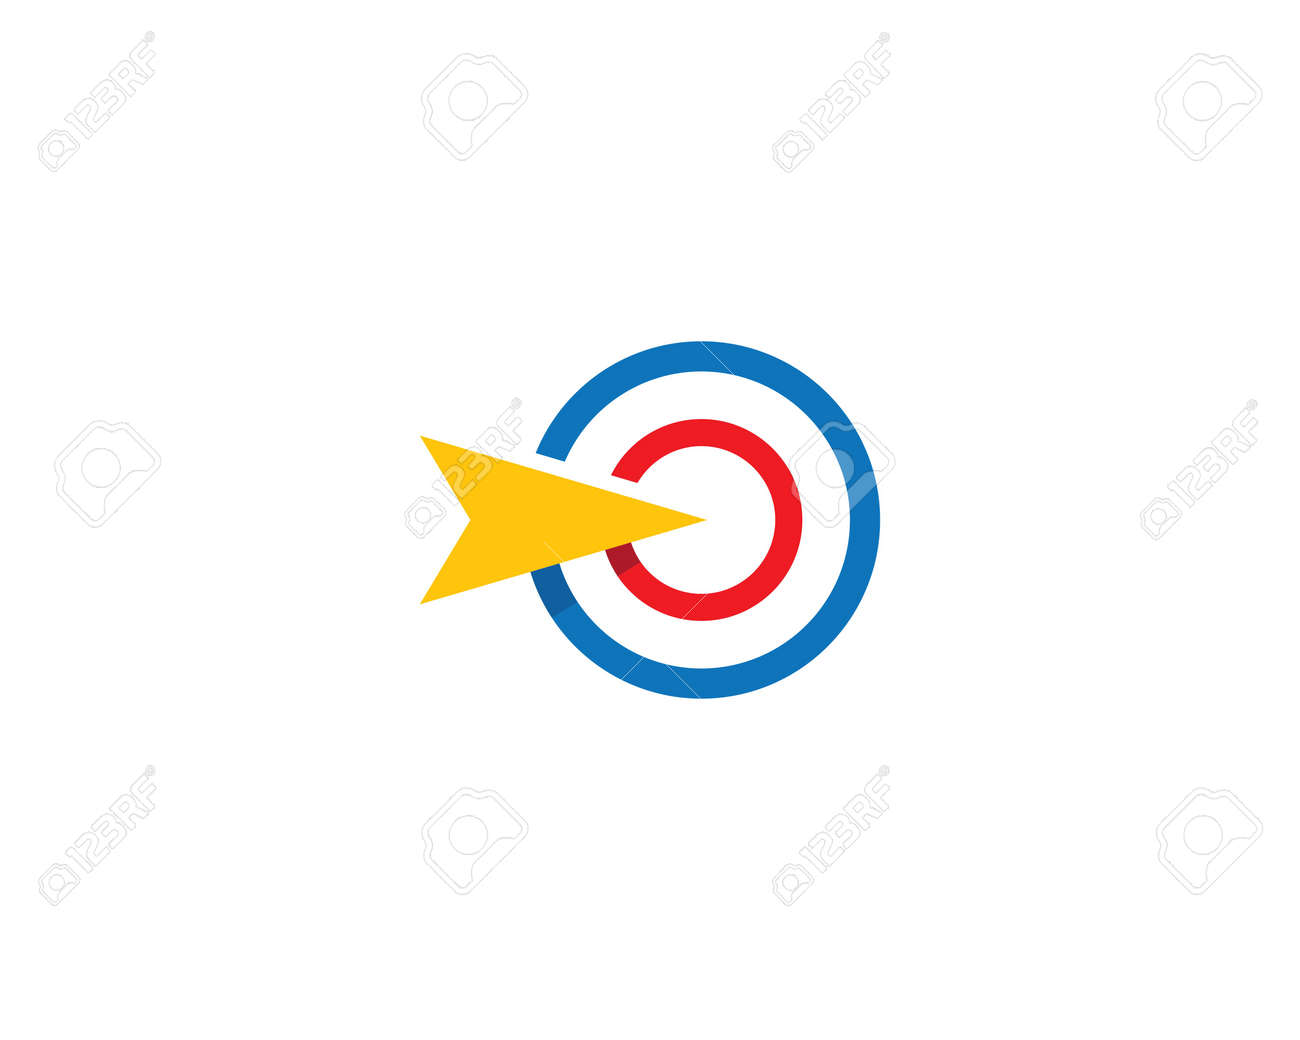 Target icon vector illustration template - 153625185